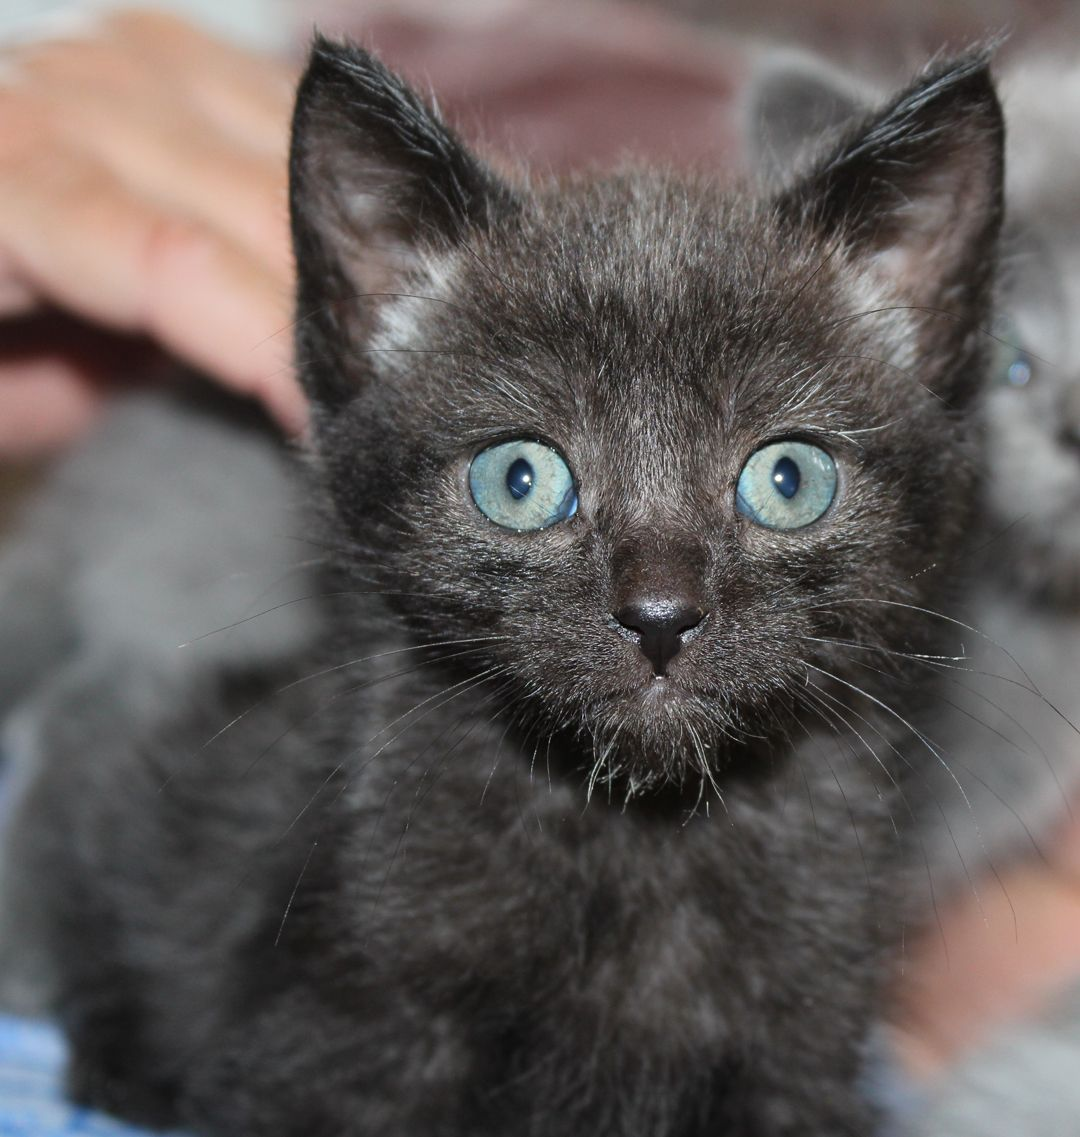 She'll be ready for adoption towards the end of Sept